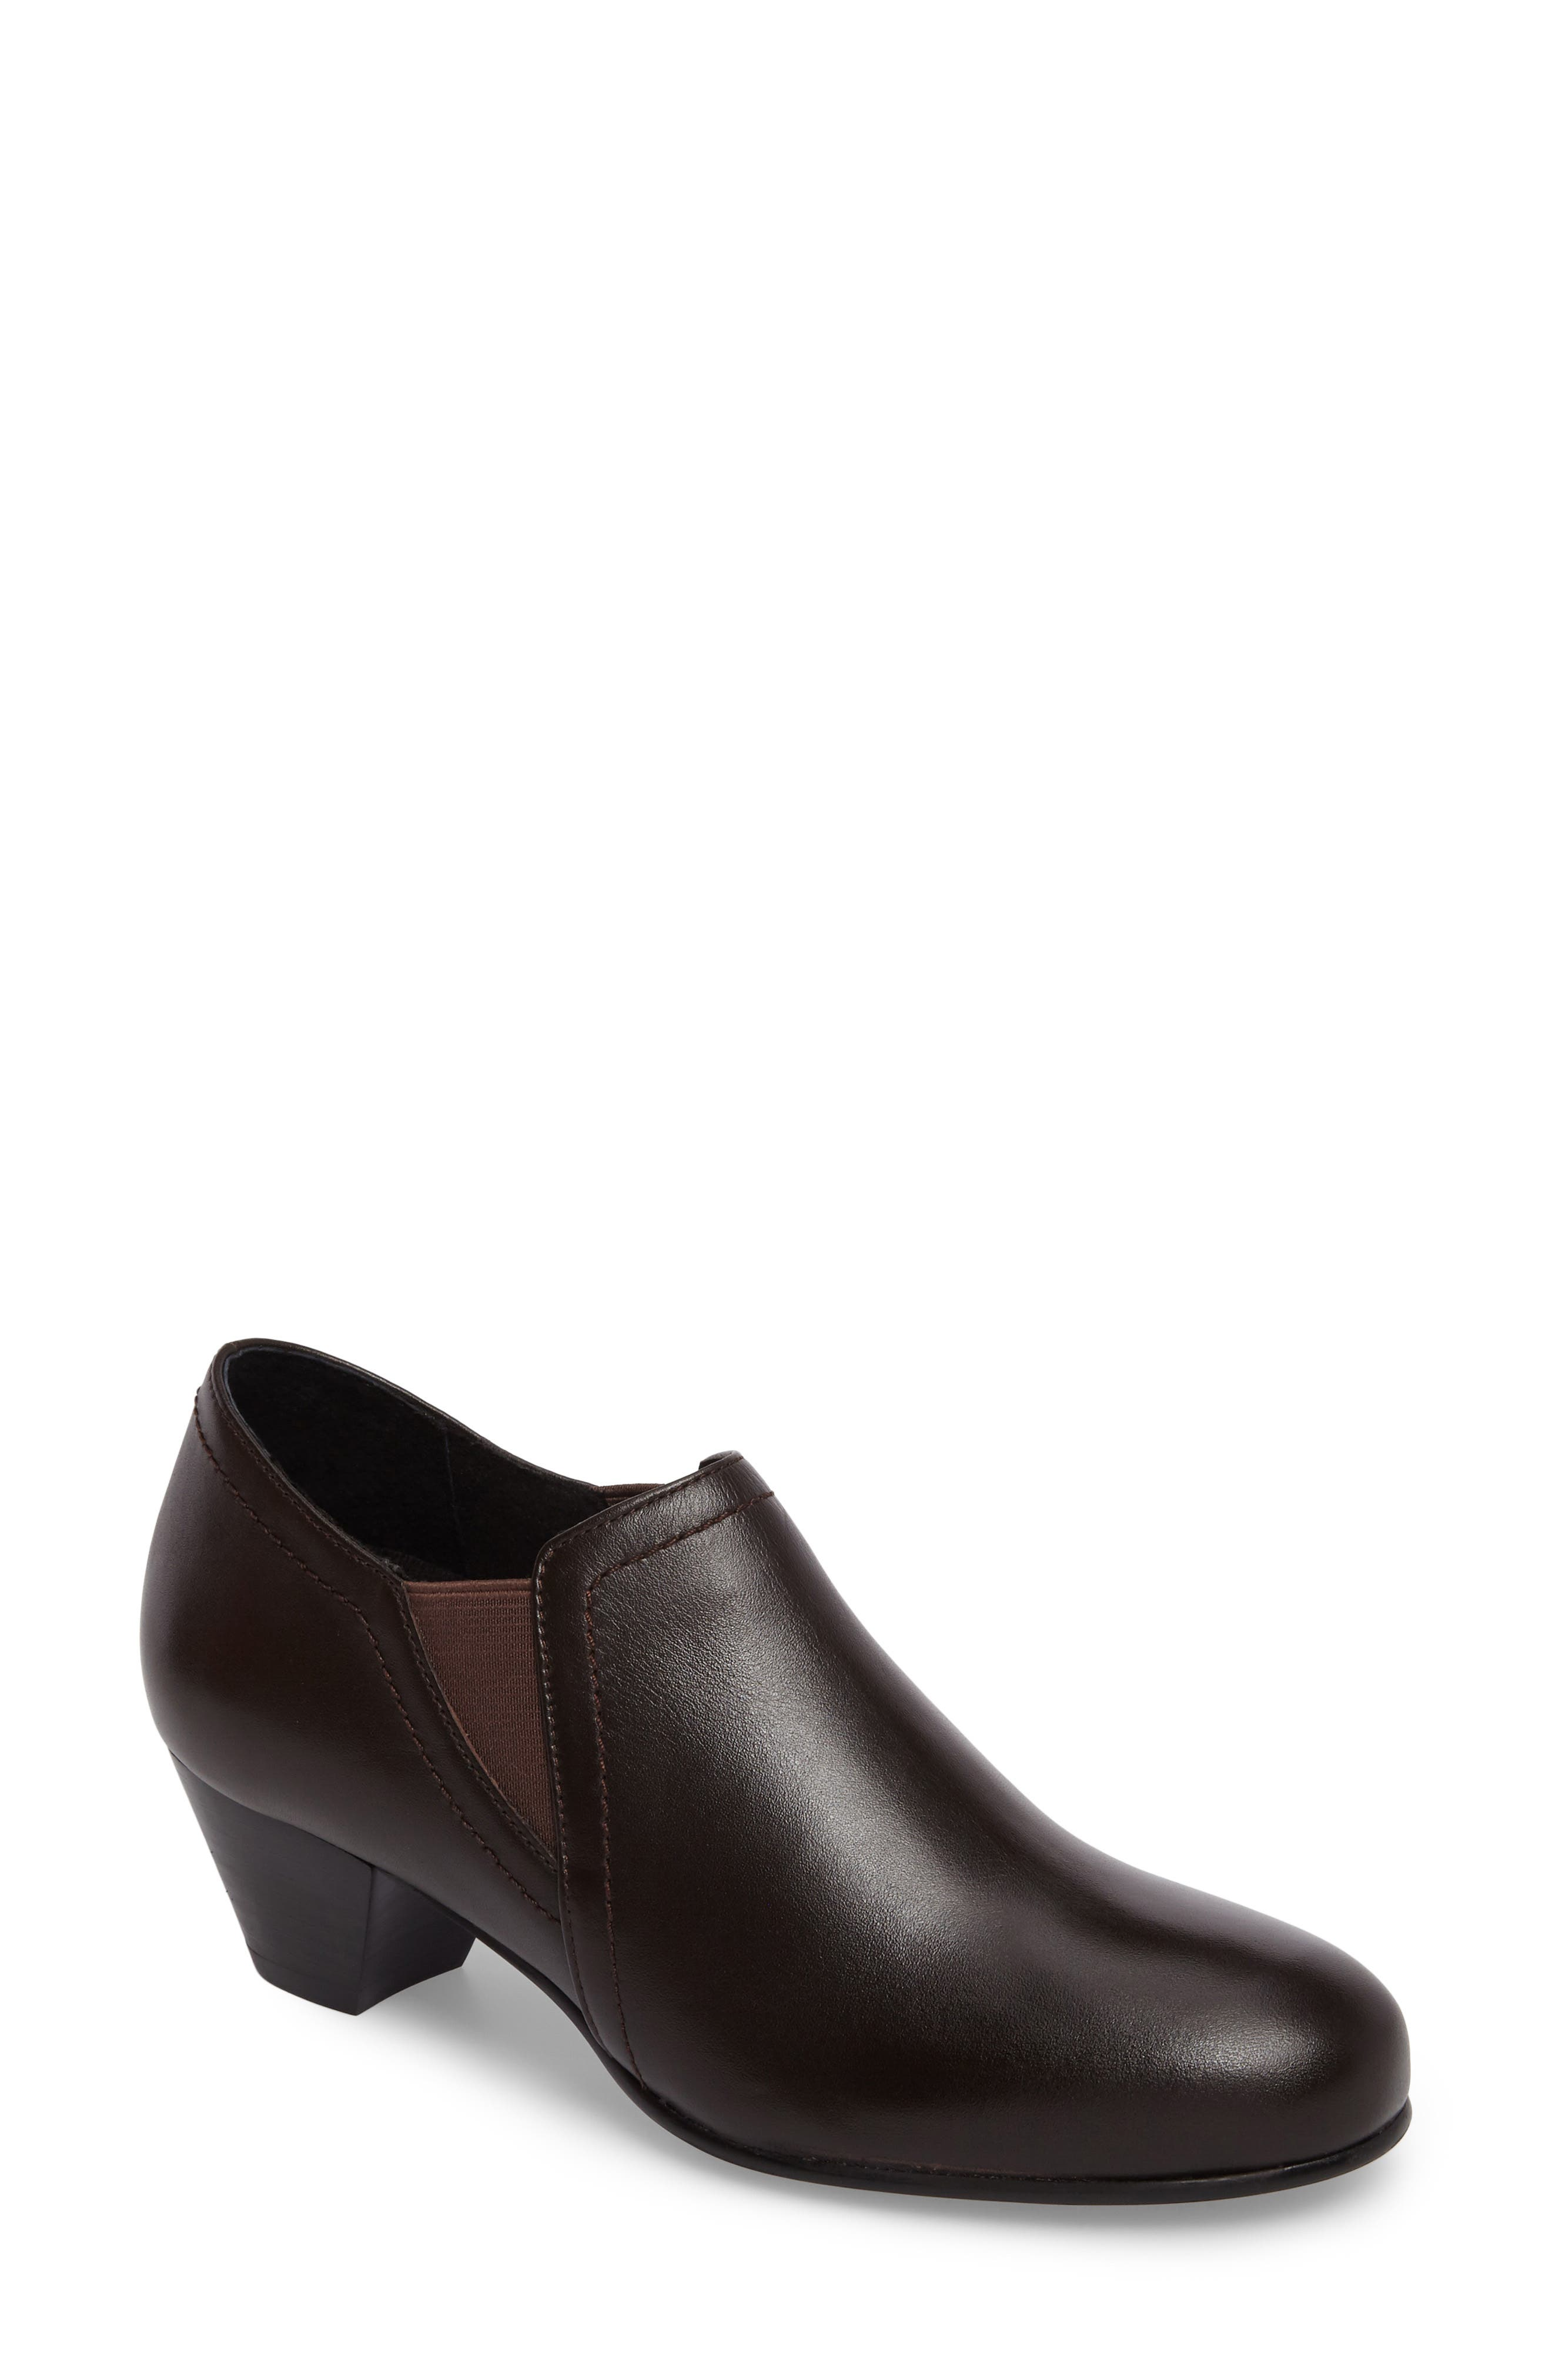 Maple Bootie,                             Main thumbnail 1, color,                             BROWN LEATHER